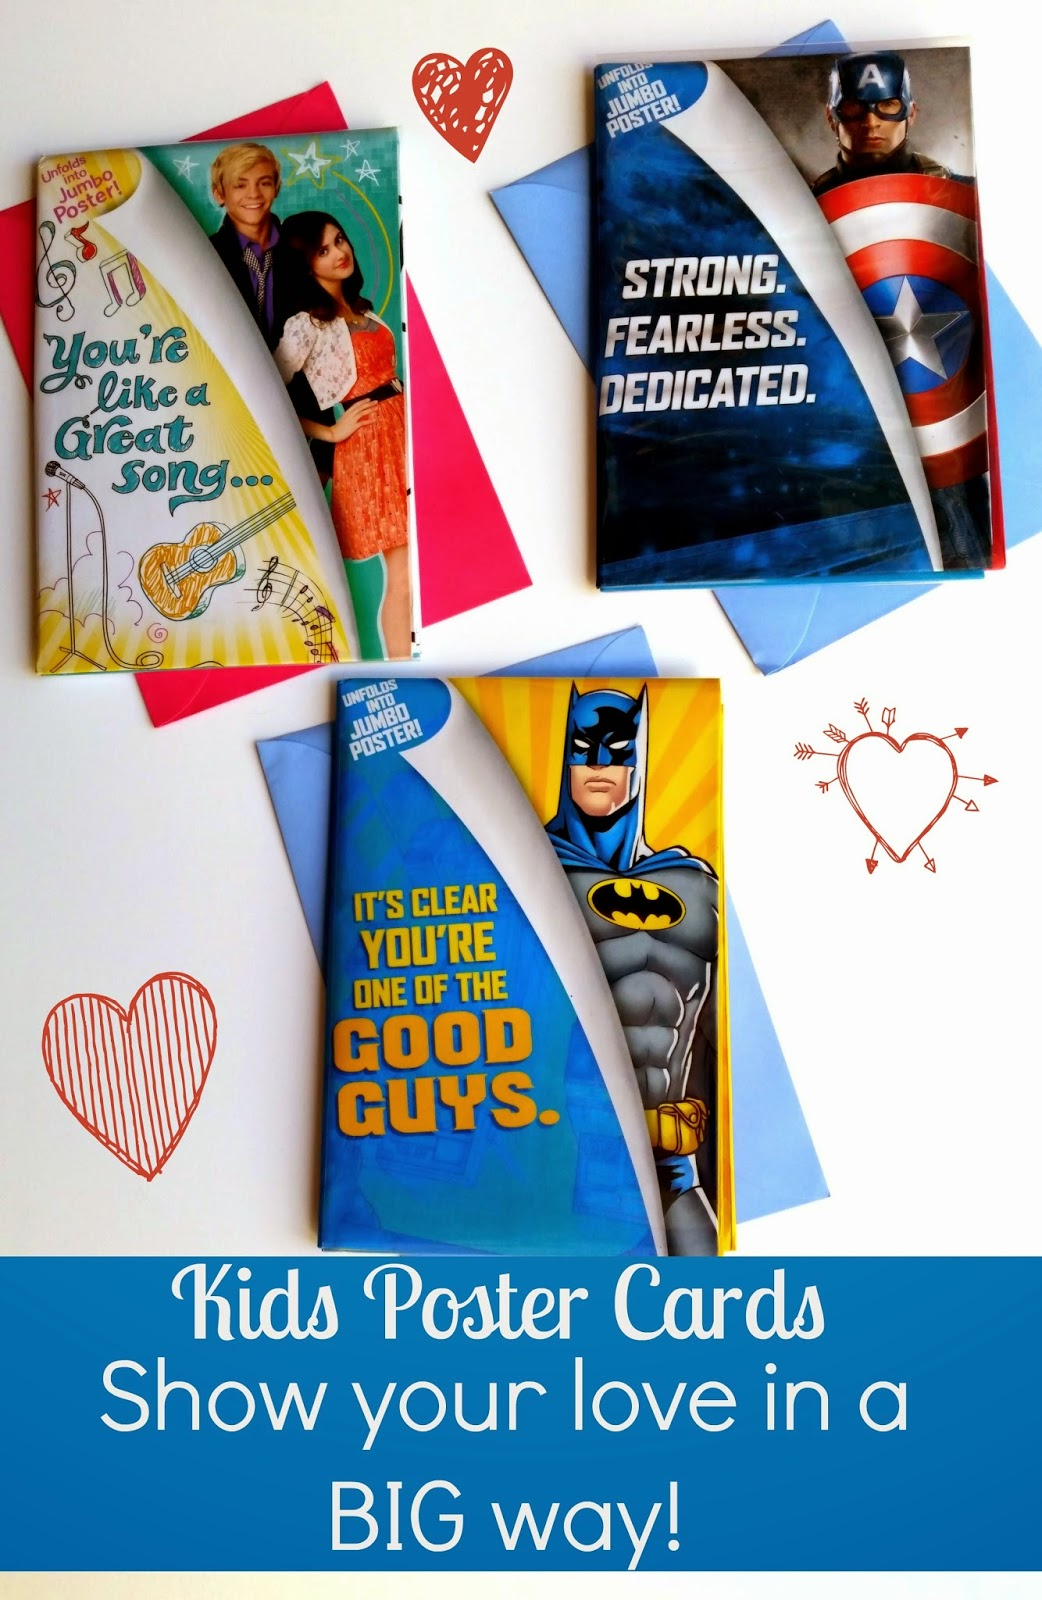 Showing my step-kids love in a BIG way! #kidscards #shop